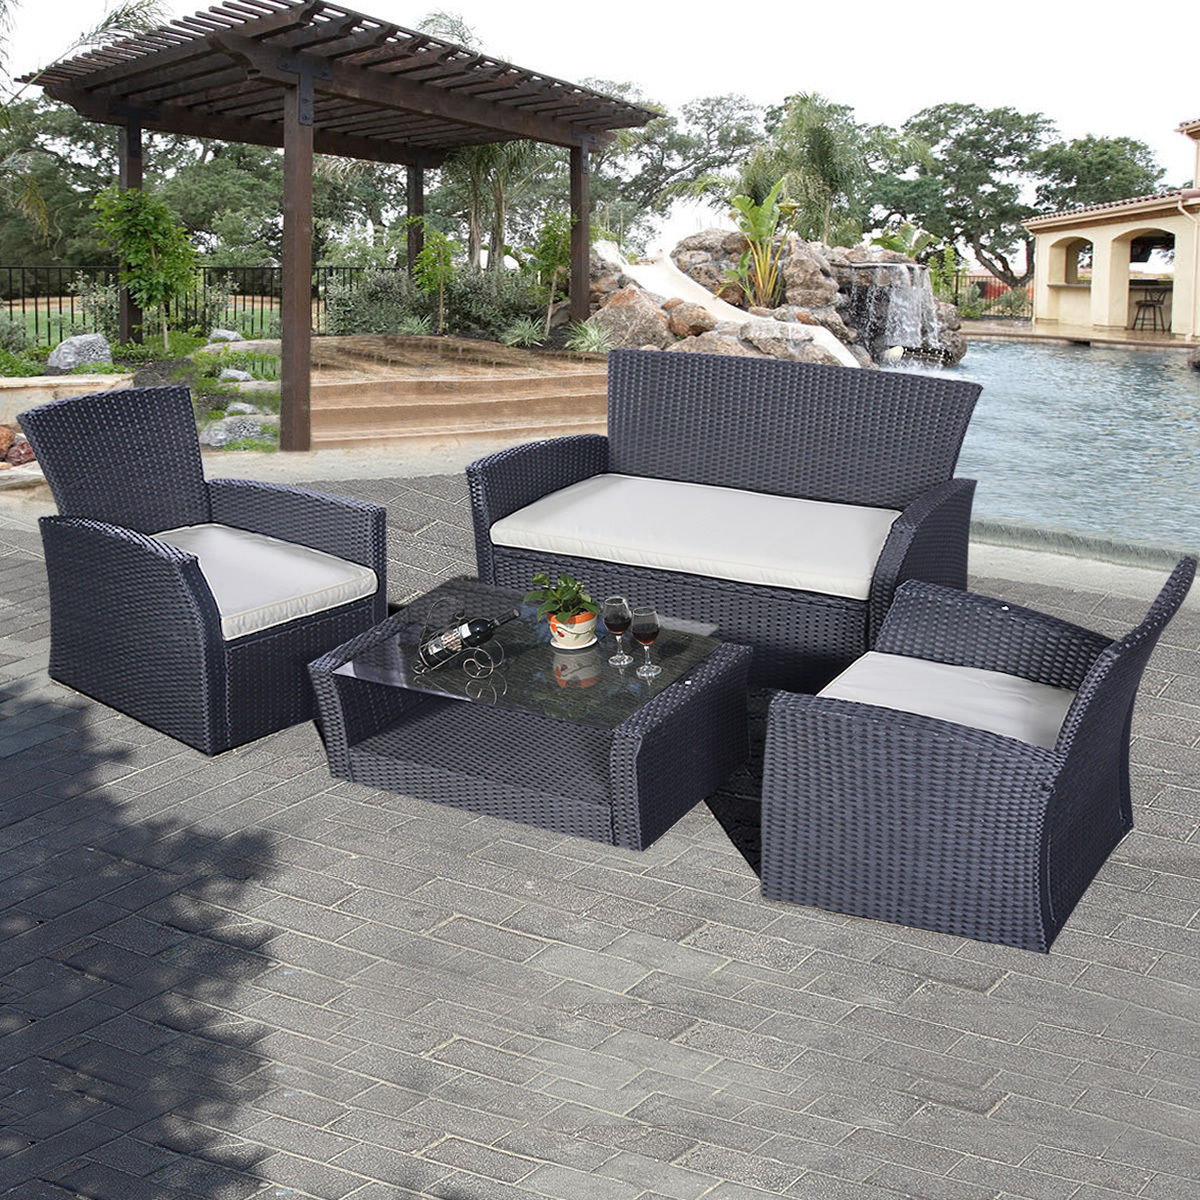 Giantex 4PCS Outdoor Patio Furniture Set Modern Wicker Garden Lawn Rattan Sofa Chairs Table Set HW50328+